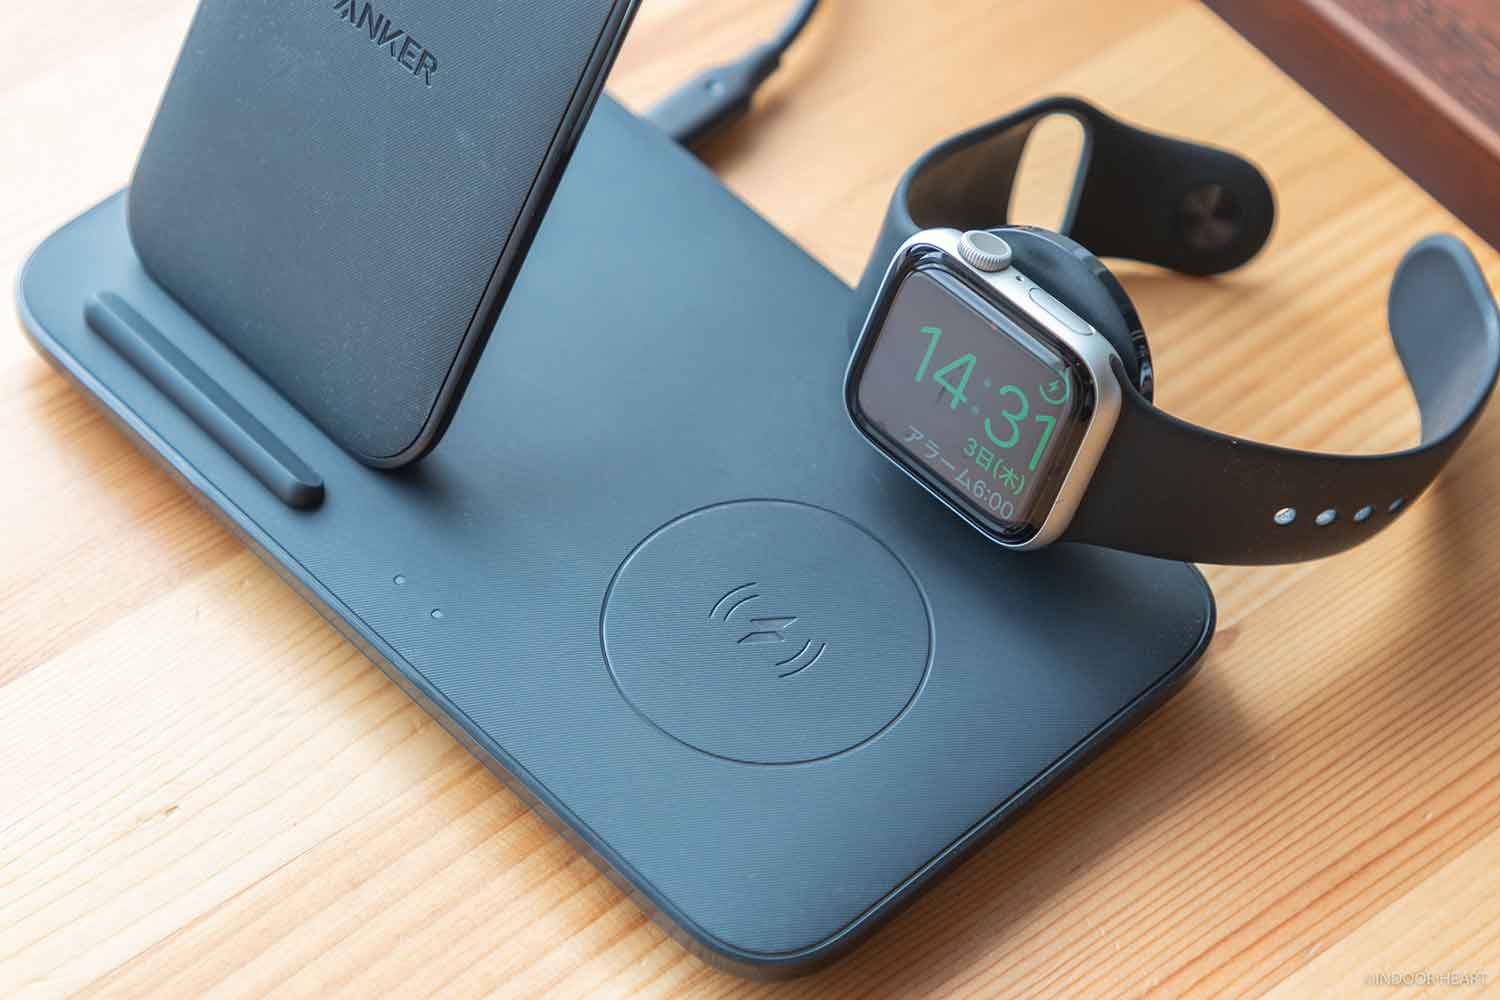 Anker PowerWave+ 3 in 1 stand with Watch HolderでApple Watchを充電